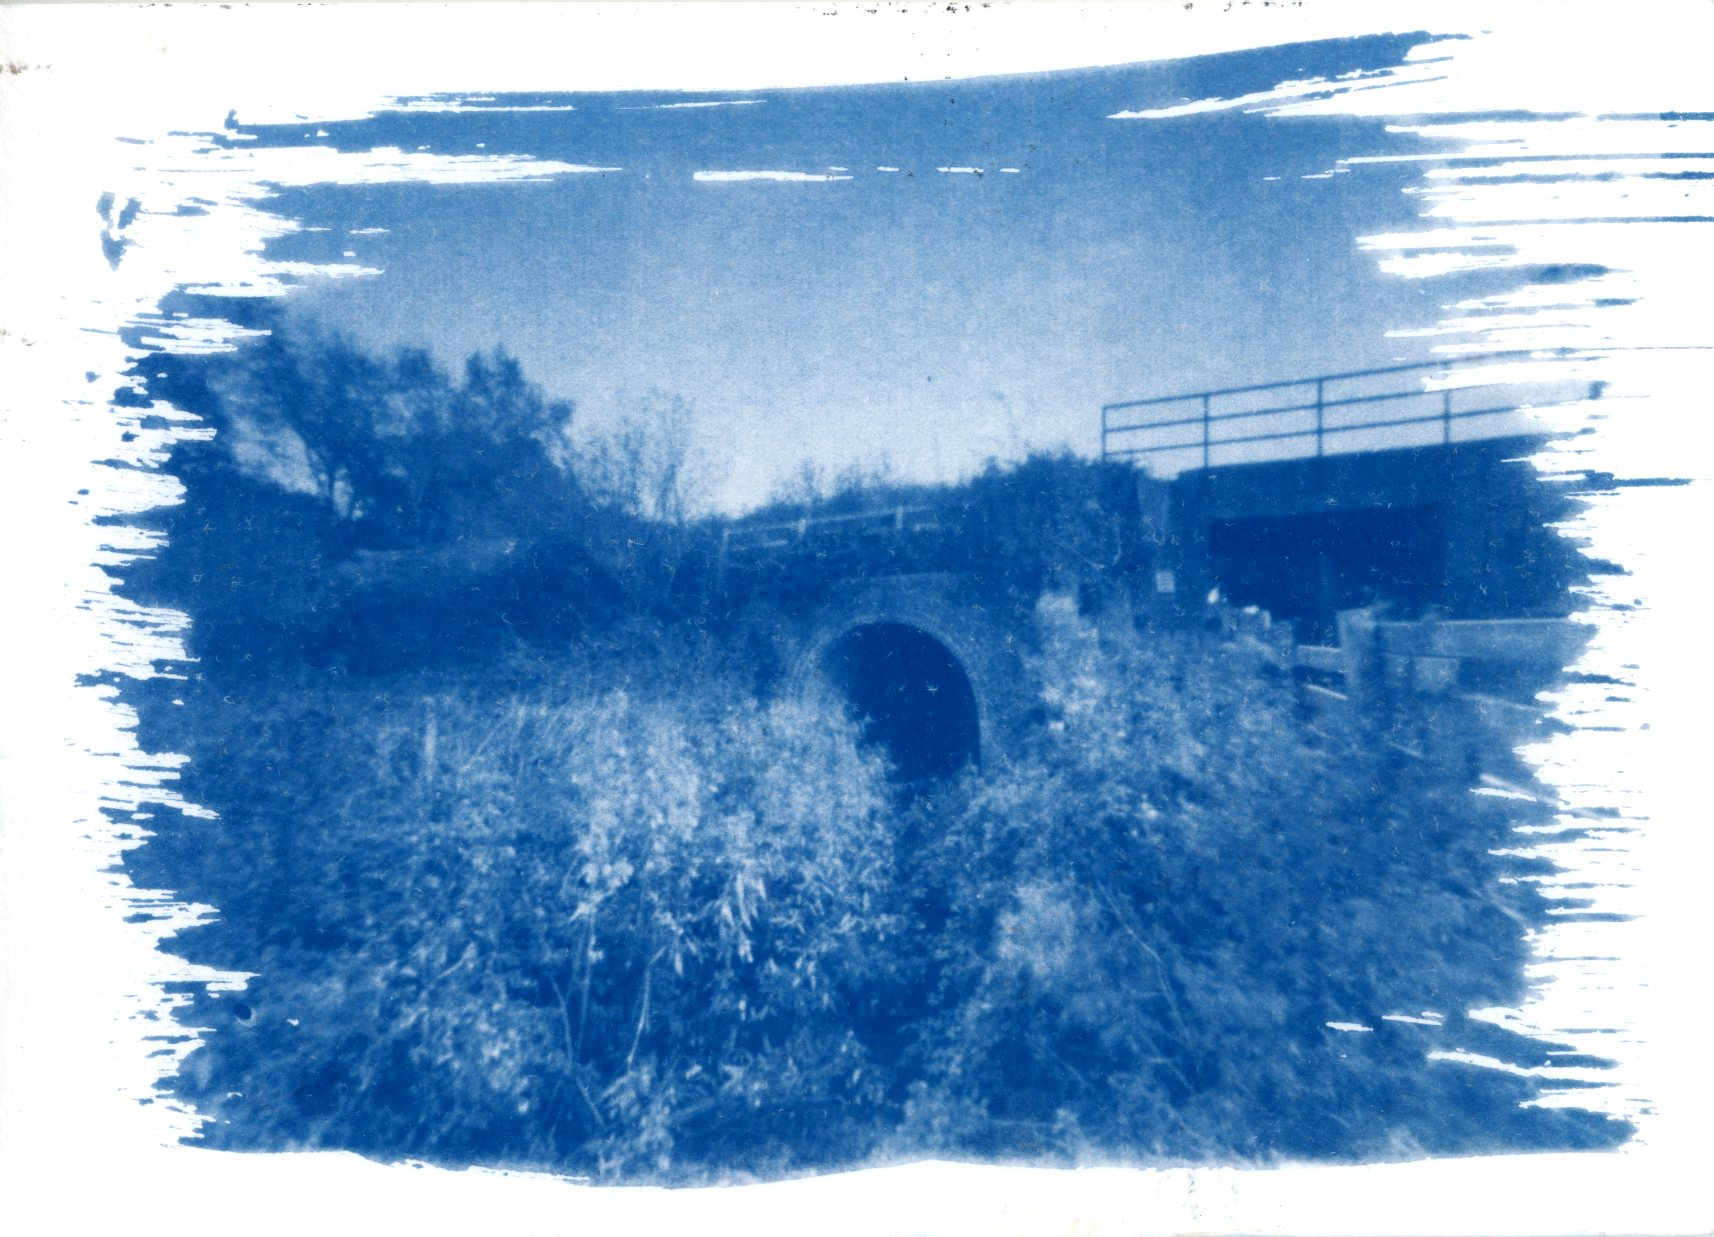 Cyanotype by  Neil Piper . Made with a pinhole camera and then printed on a watercolor paper.